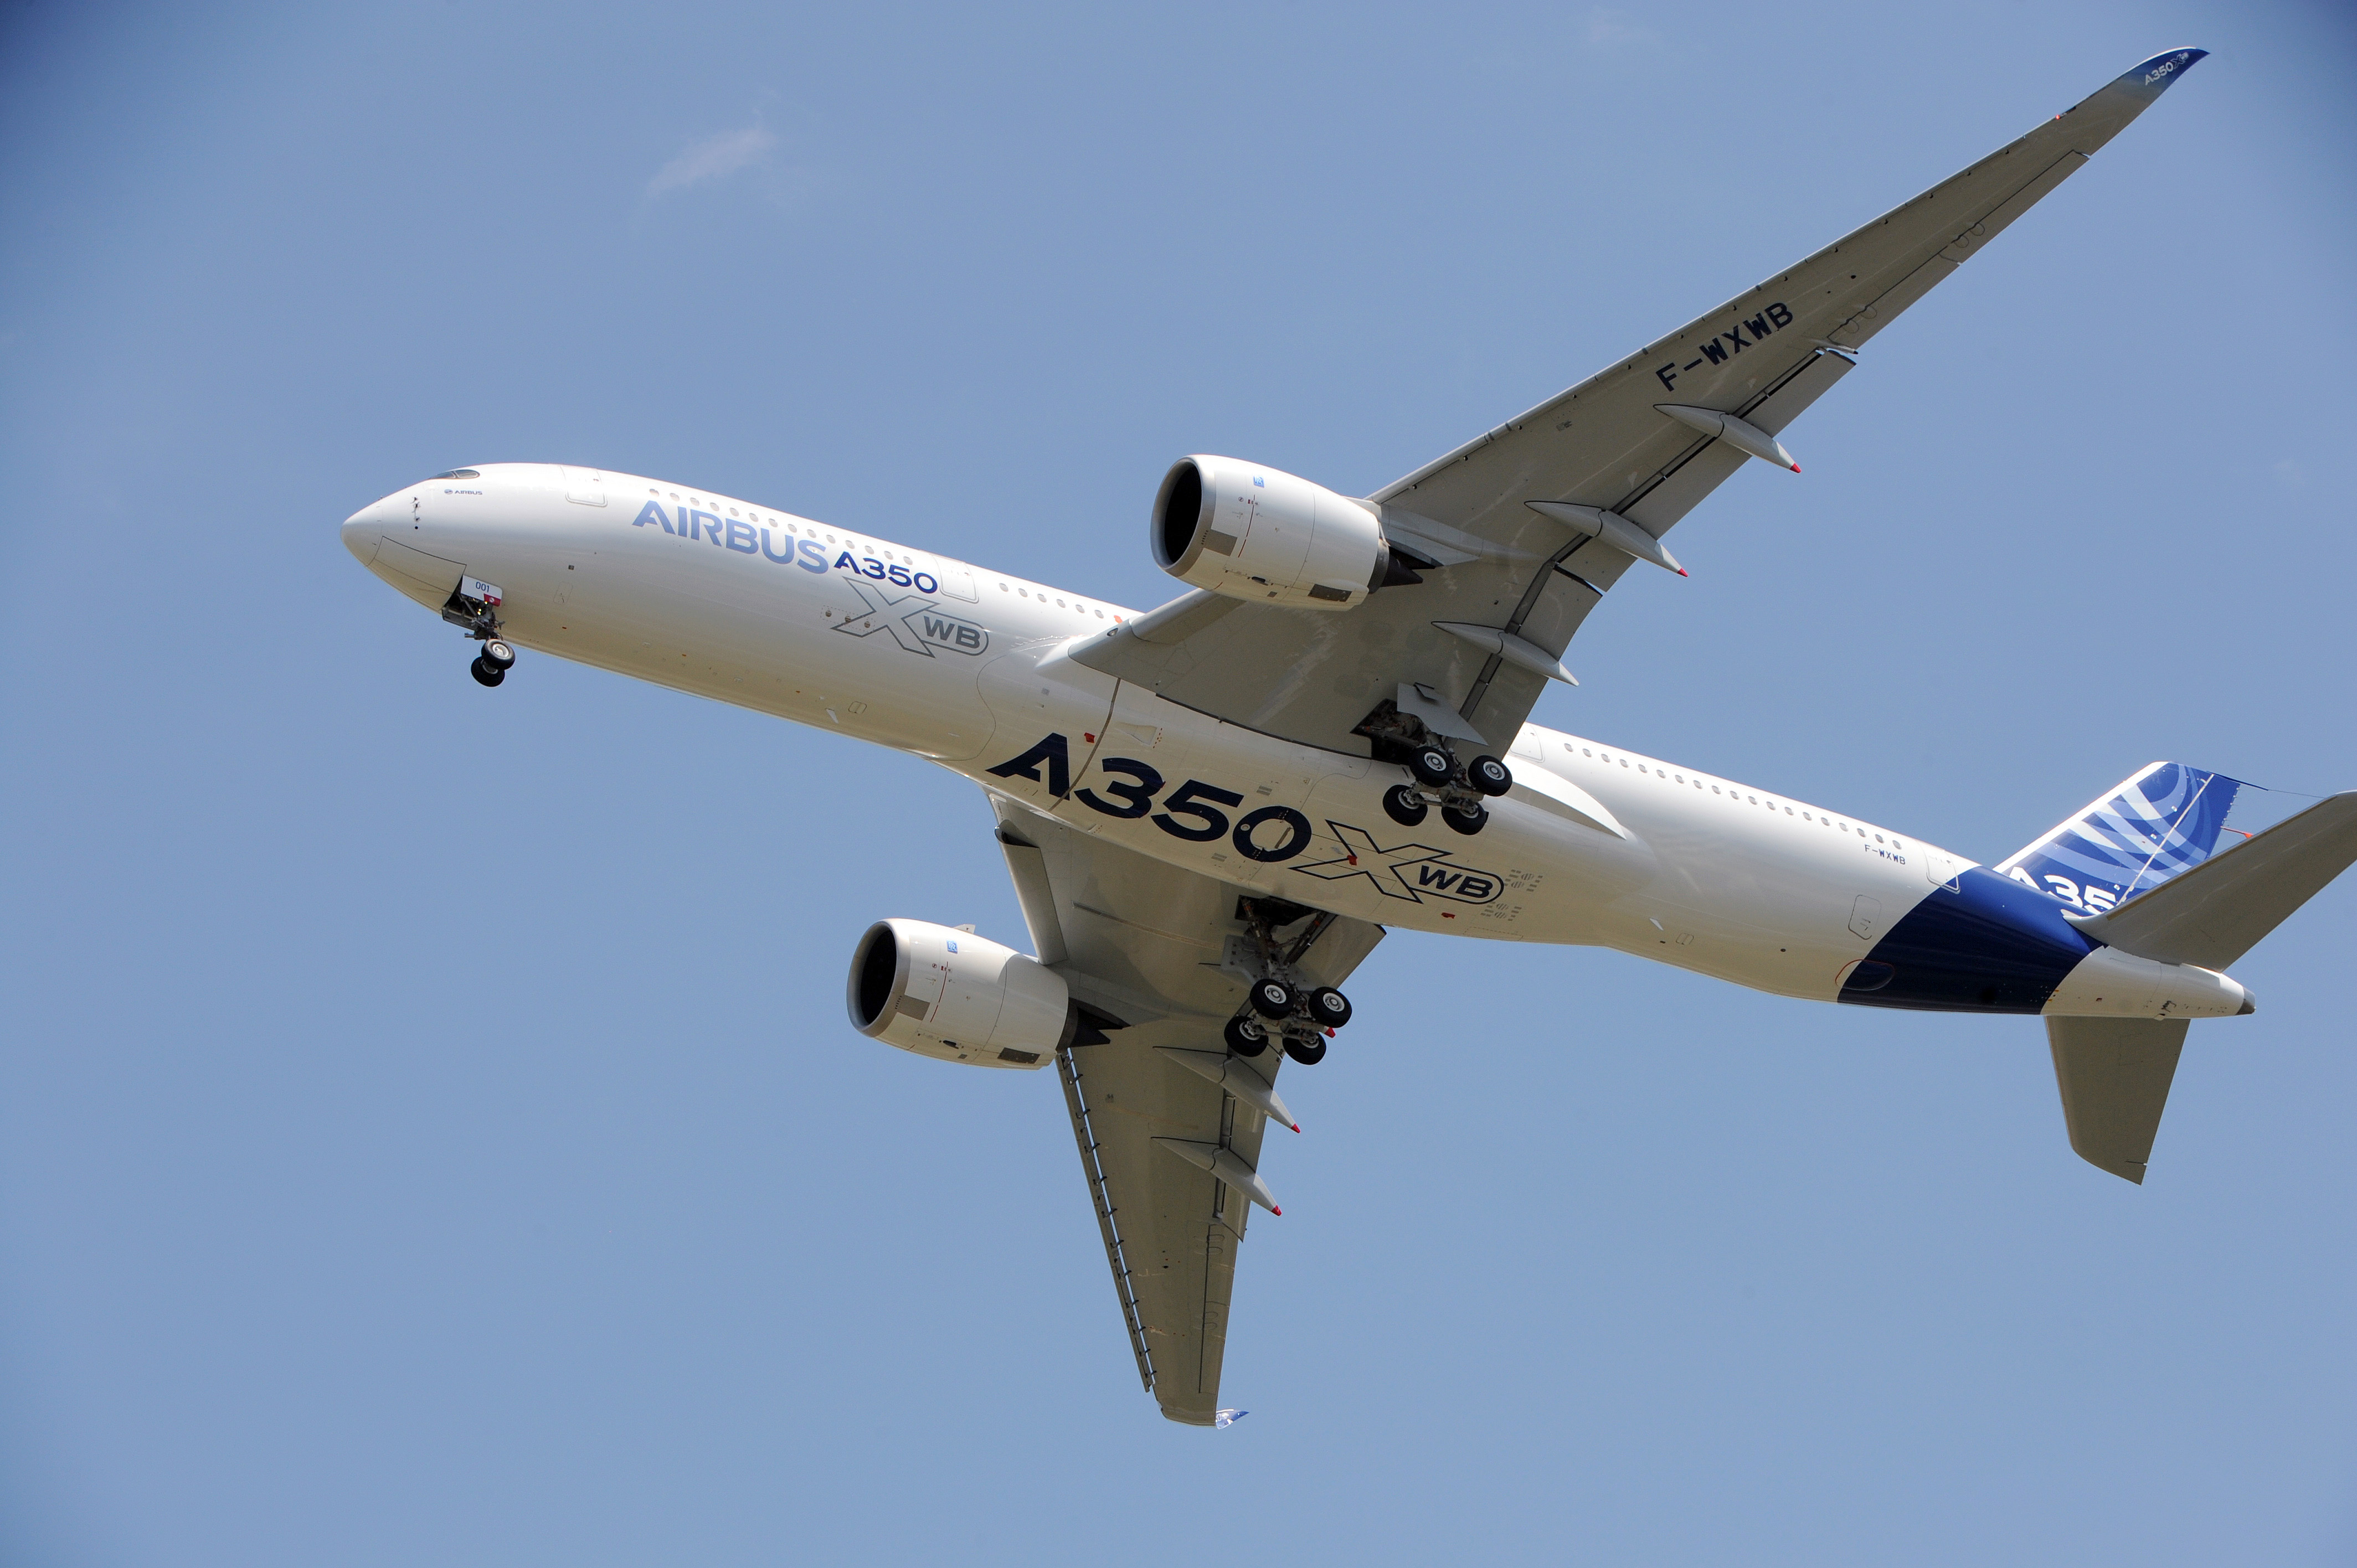 FRANCE-AVIATION-COMPANY-AIRBUS-BOEING-TAKEOFF